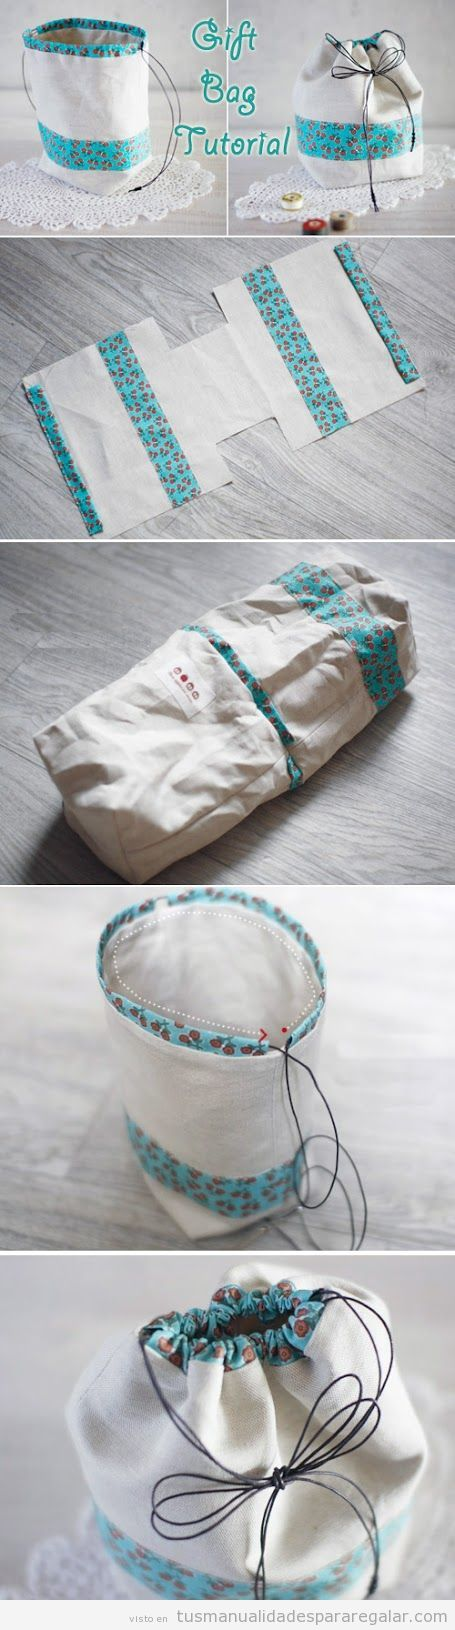 Tutorial bolsa regalo DIY de tela